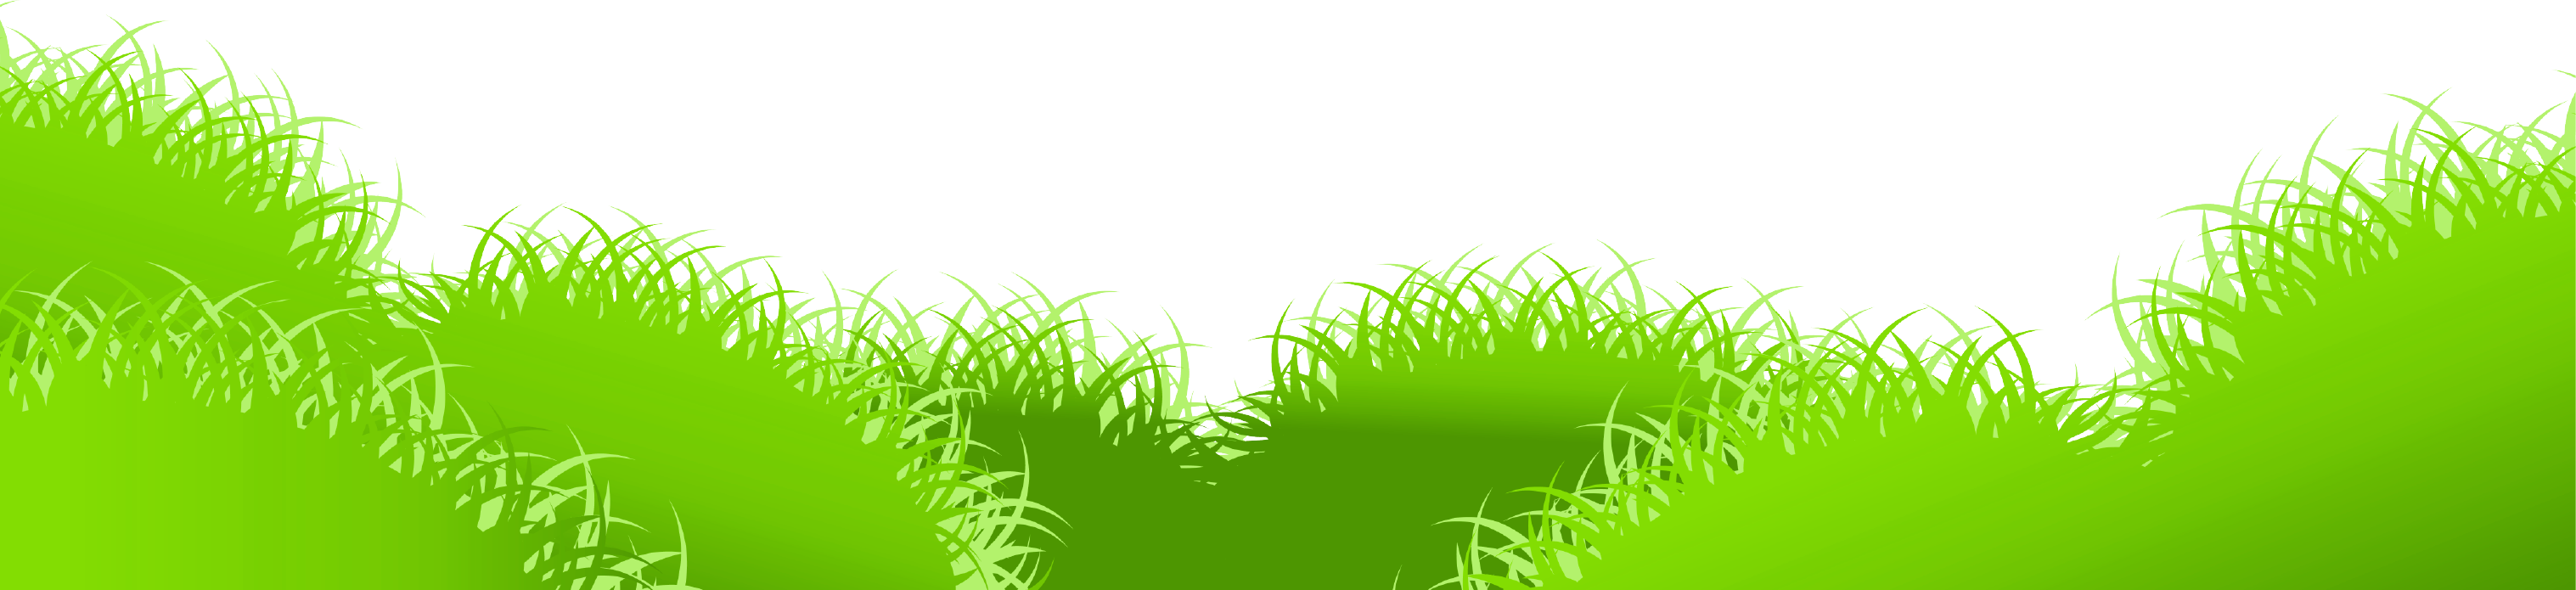 Grass clipart #1, Download drawings